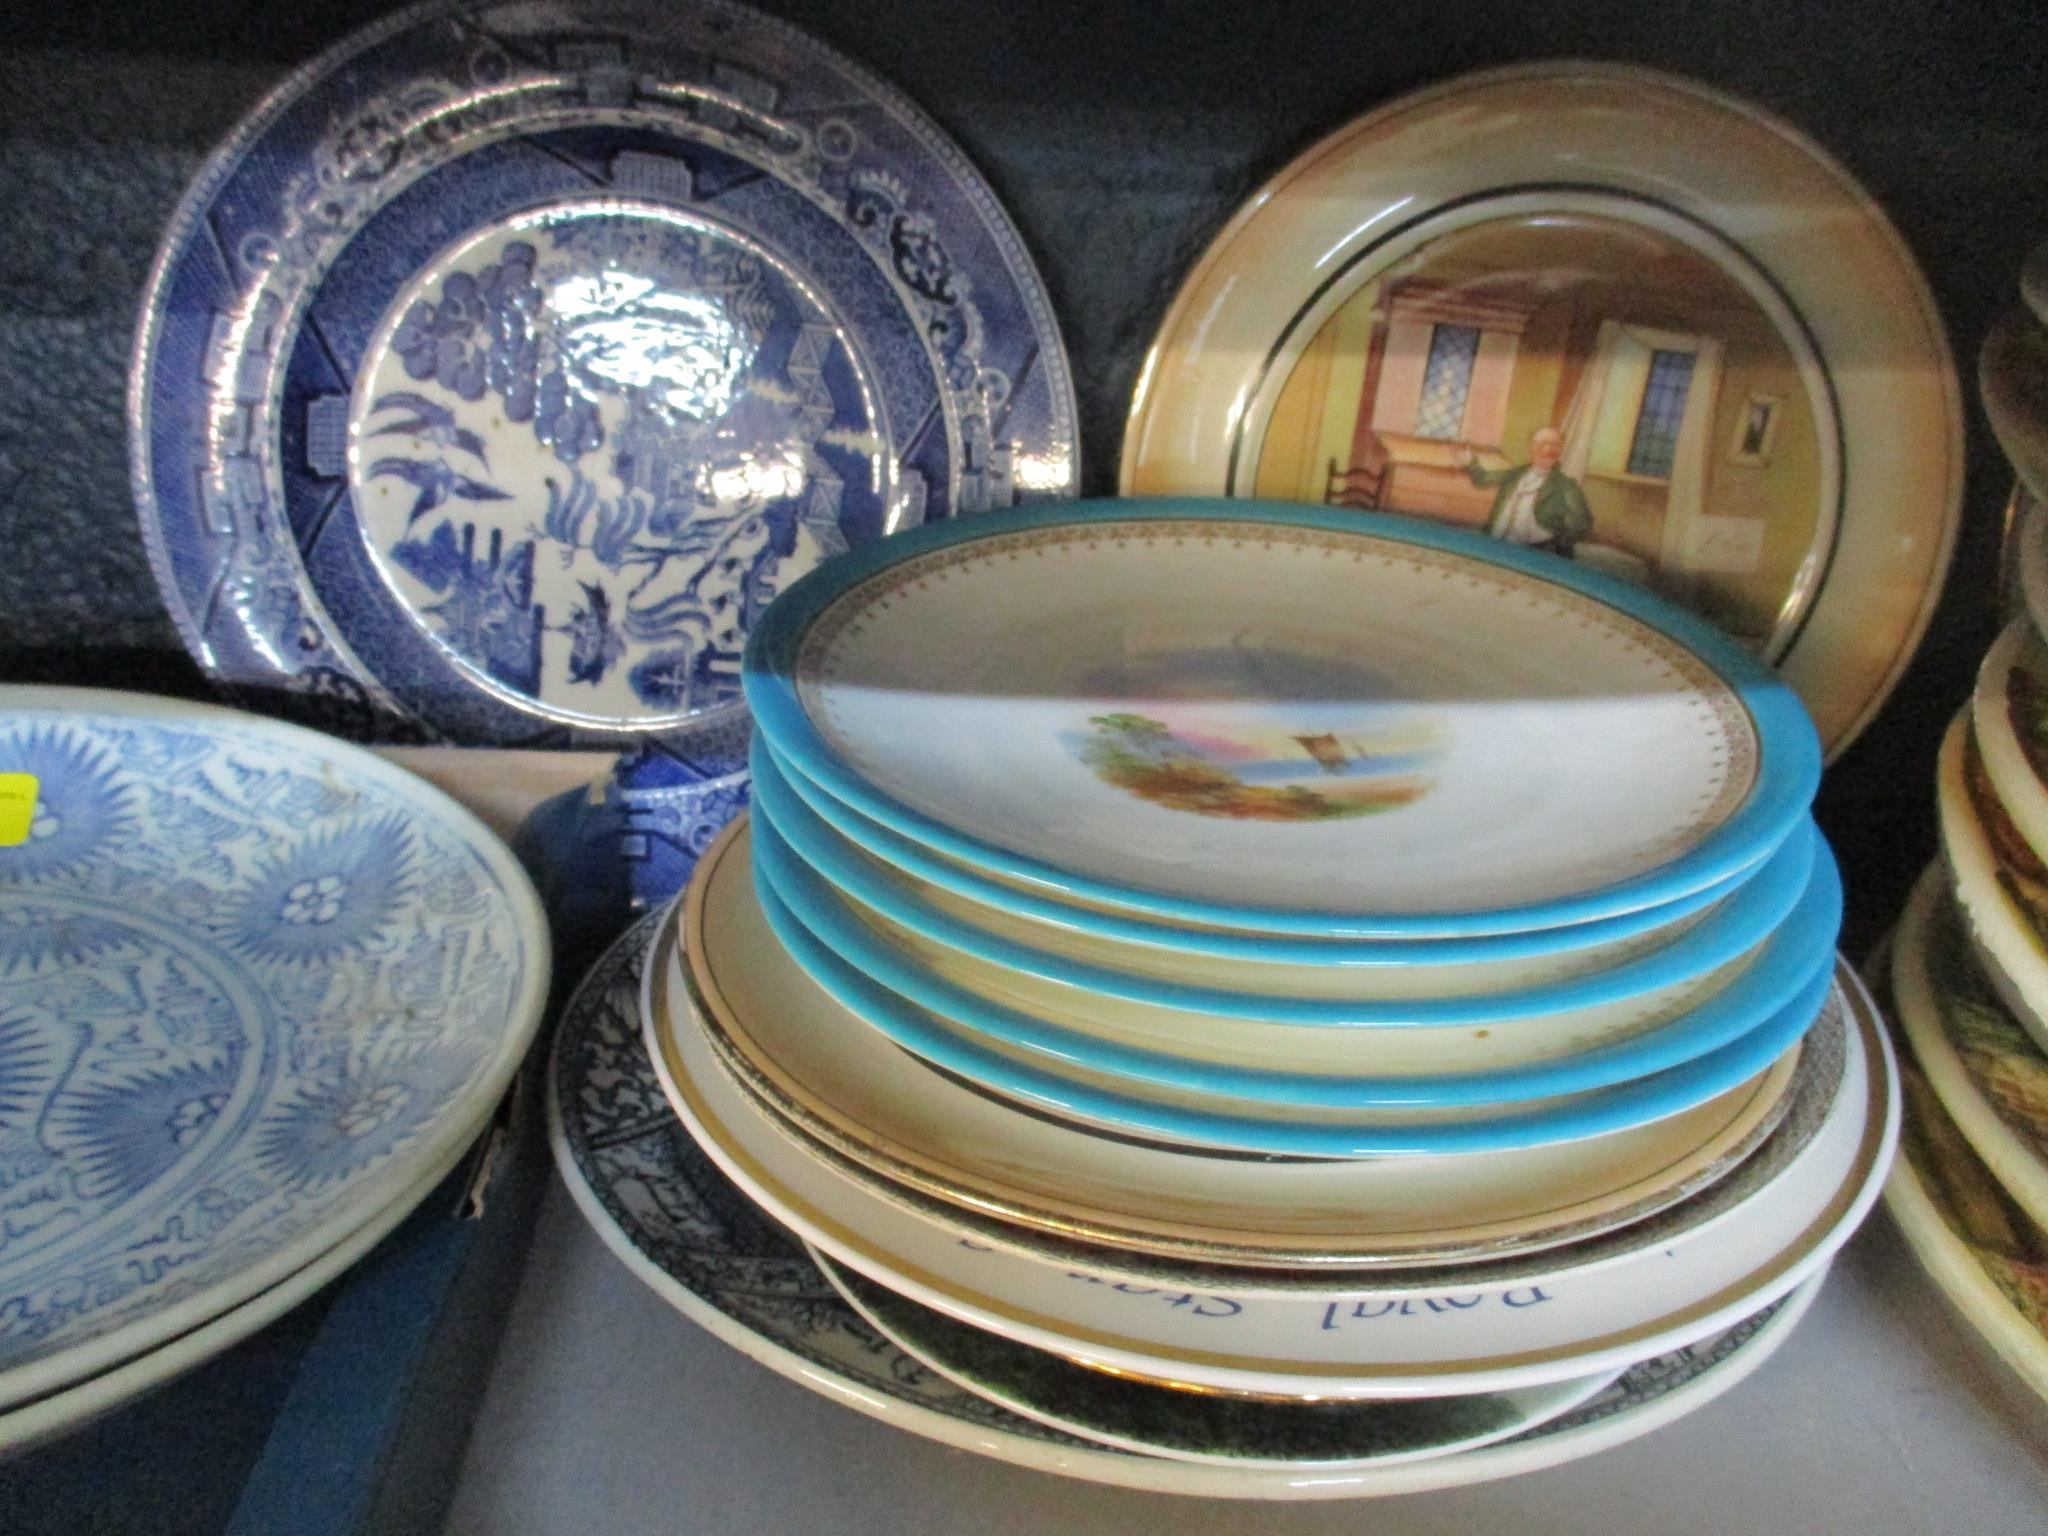 Two provincial Chinese blue and white plates, along with a selection of other Victorian and later - Image 4 of 4